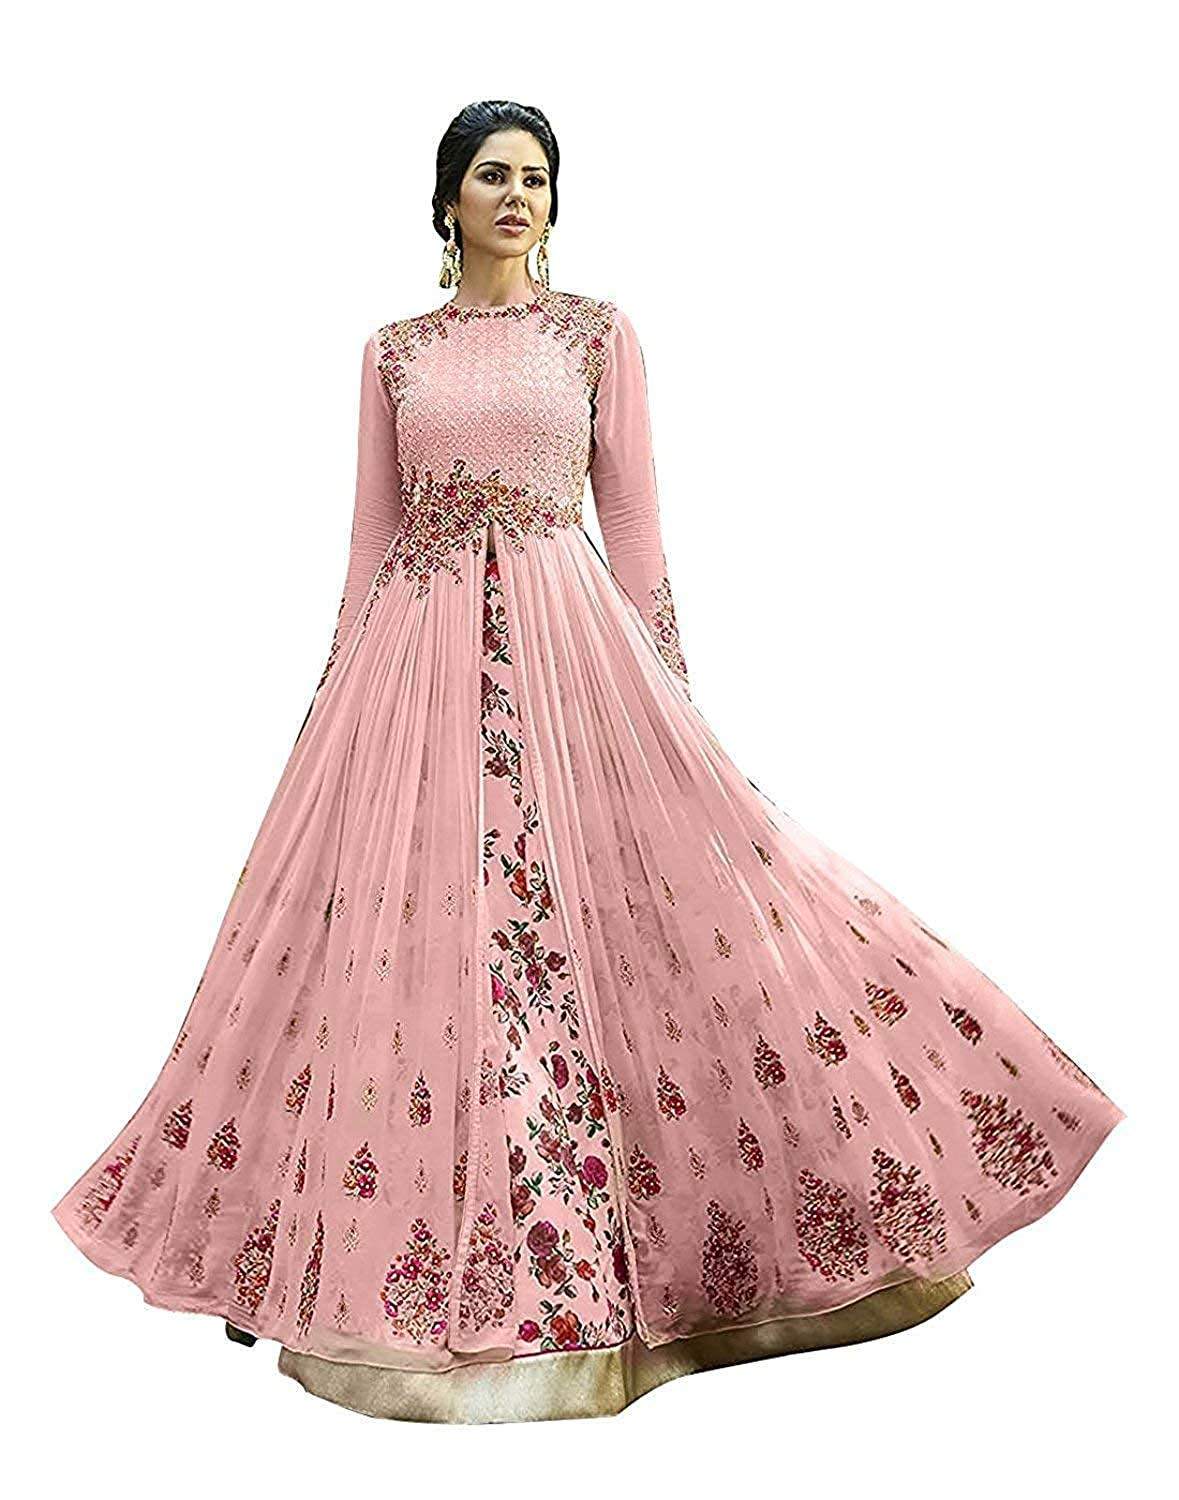 de1f1bc4d2 7 Horse selection Women's Georgette Party Wear Gown (Pink, Free Size):  Amazon.in: Clothing & Accessories